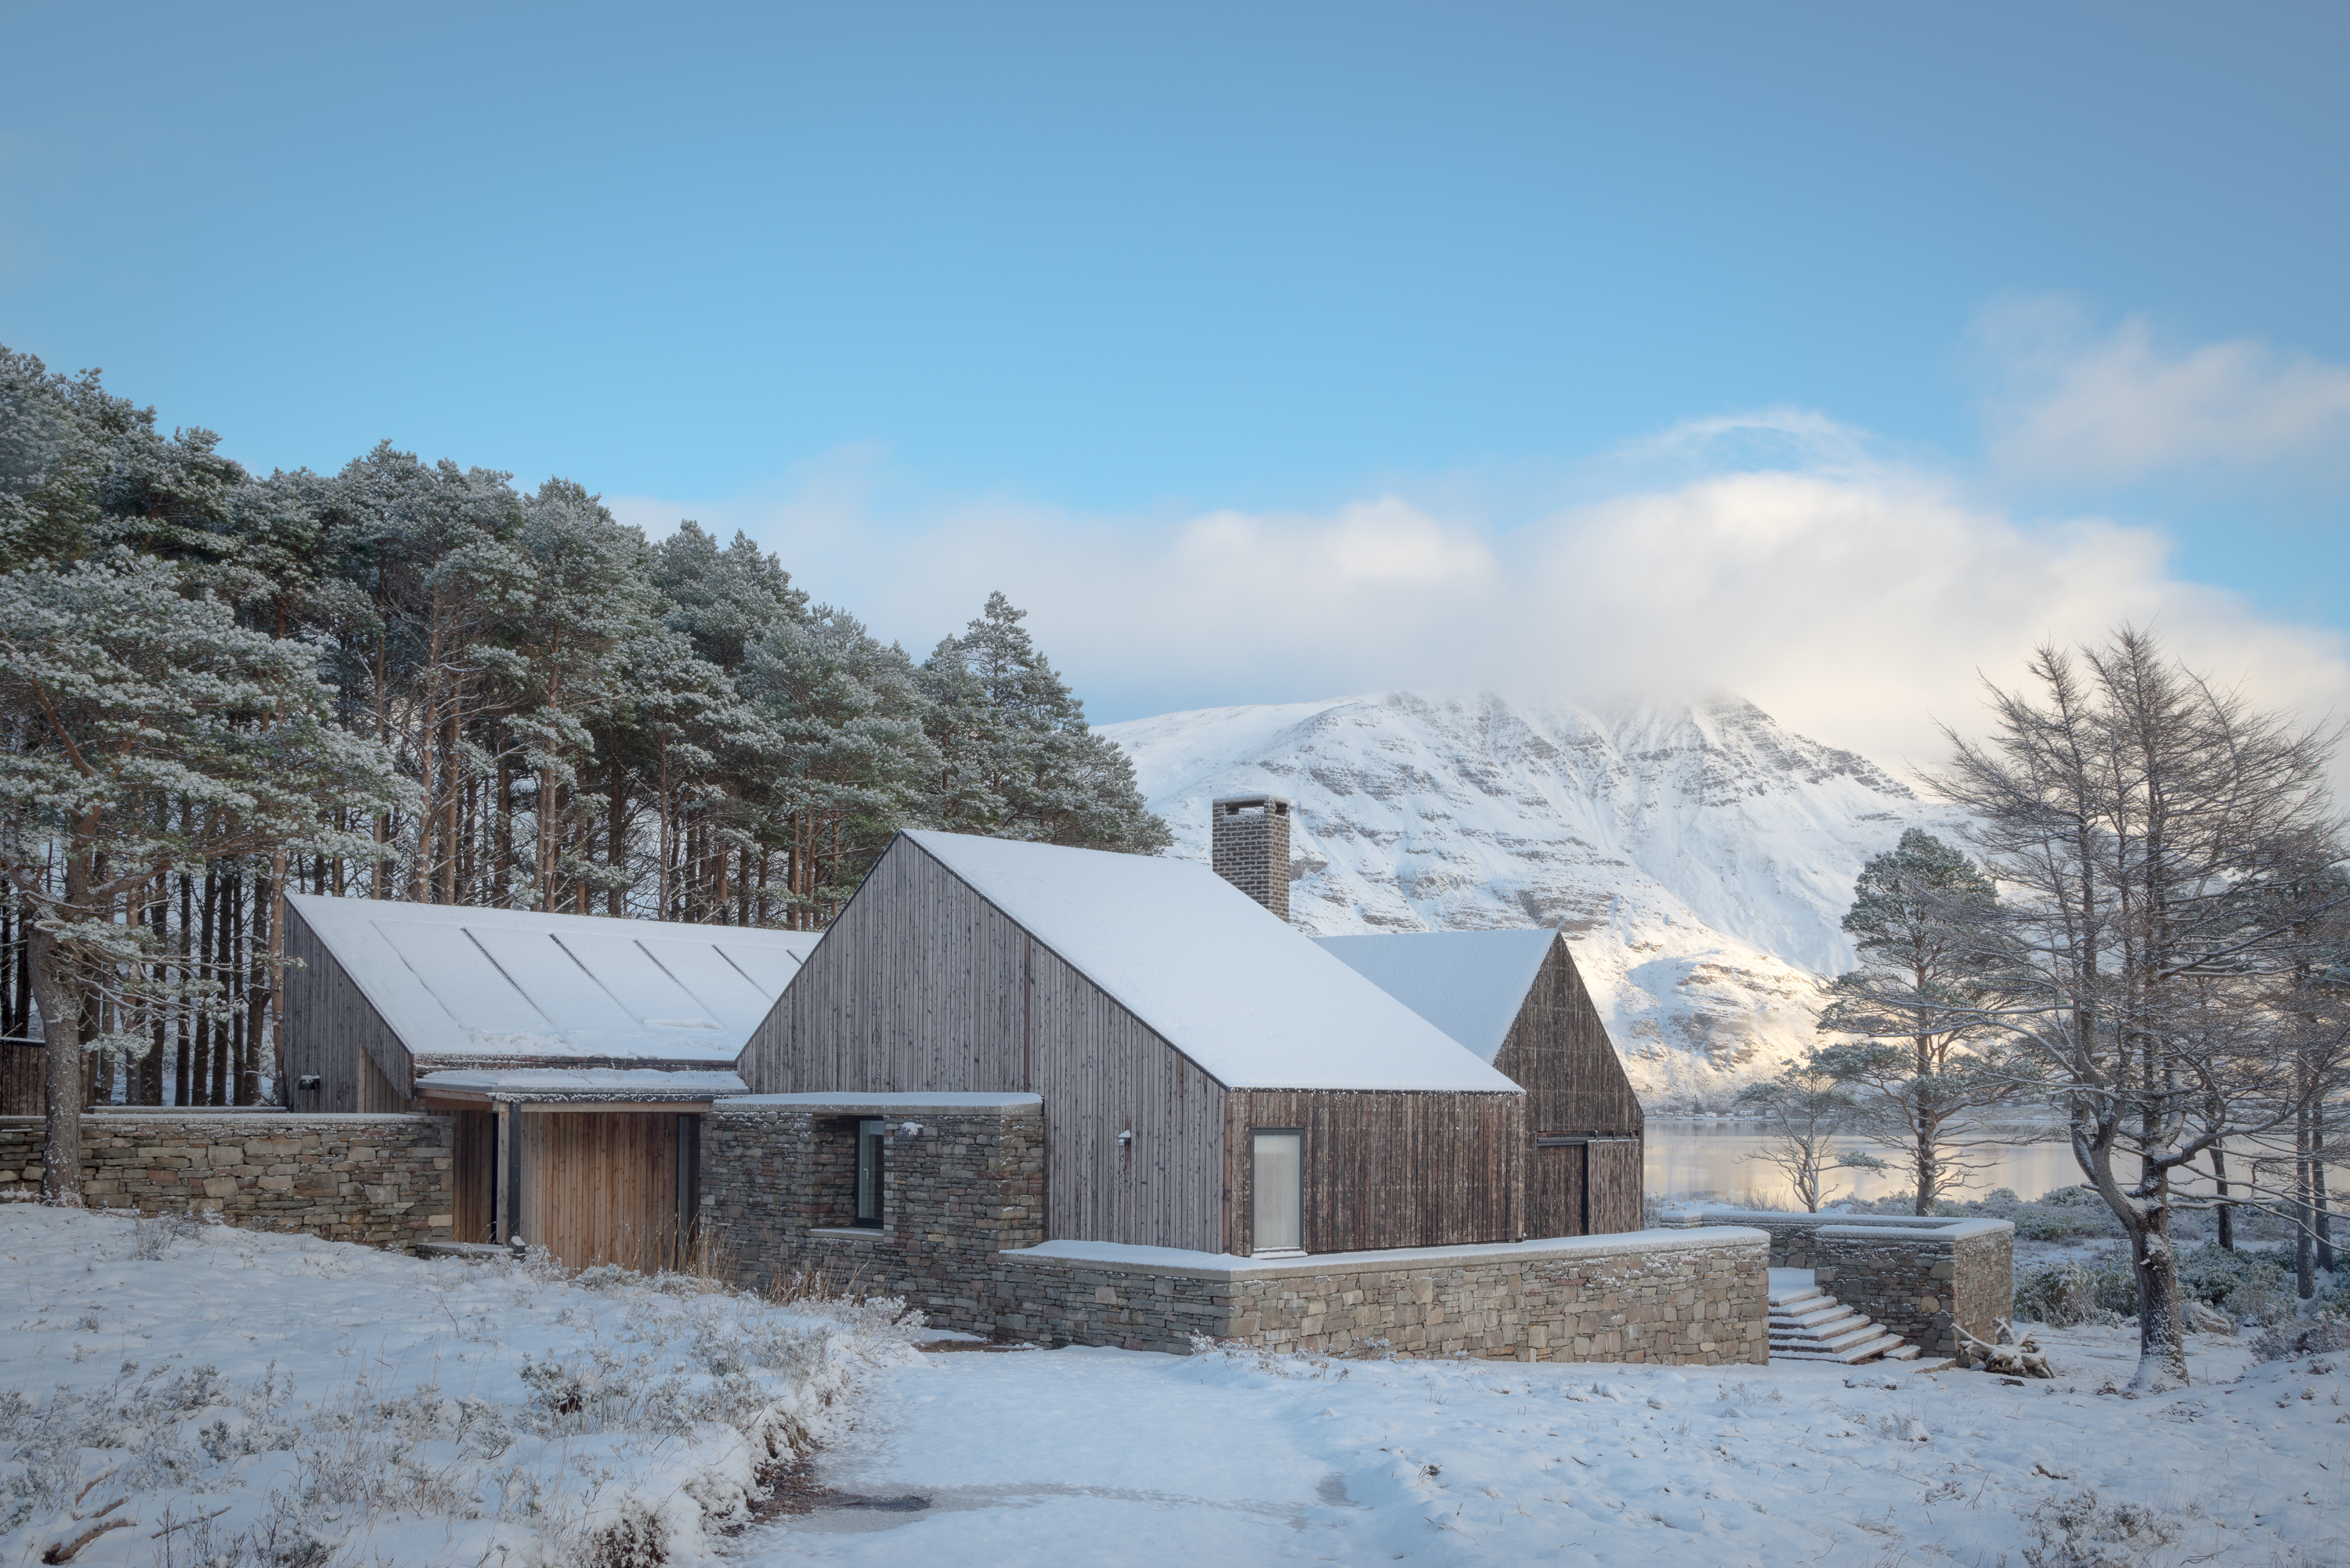 Lochside House joins 2018 RIBA House of the Year shortlist ...